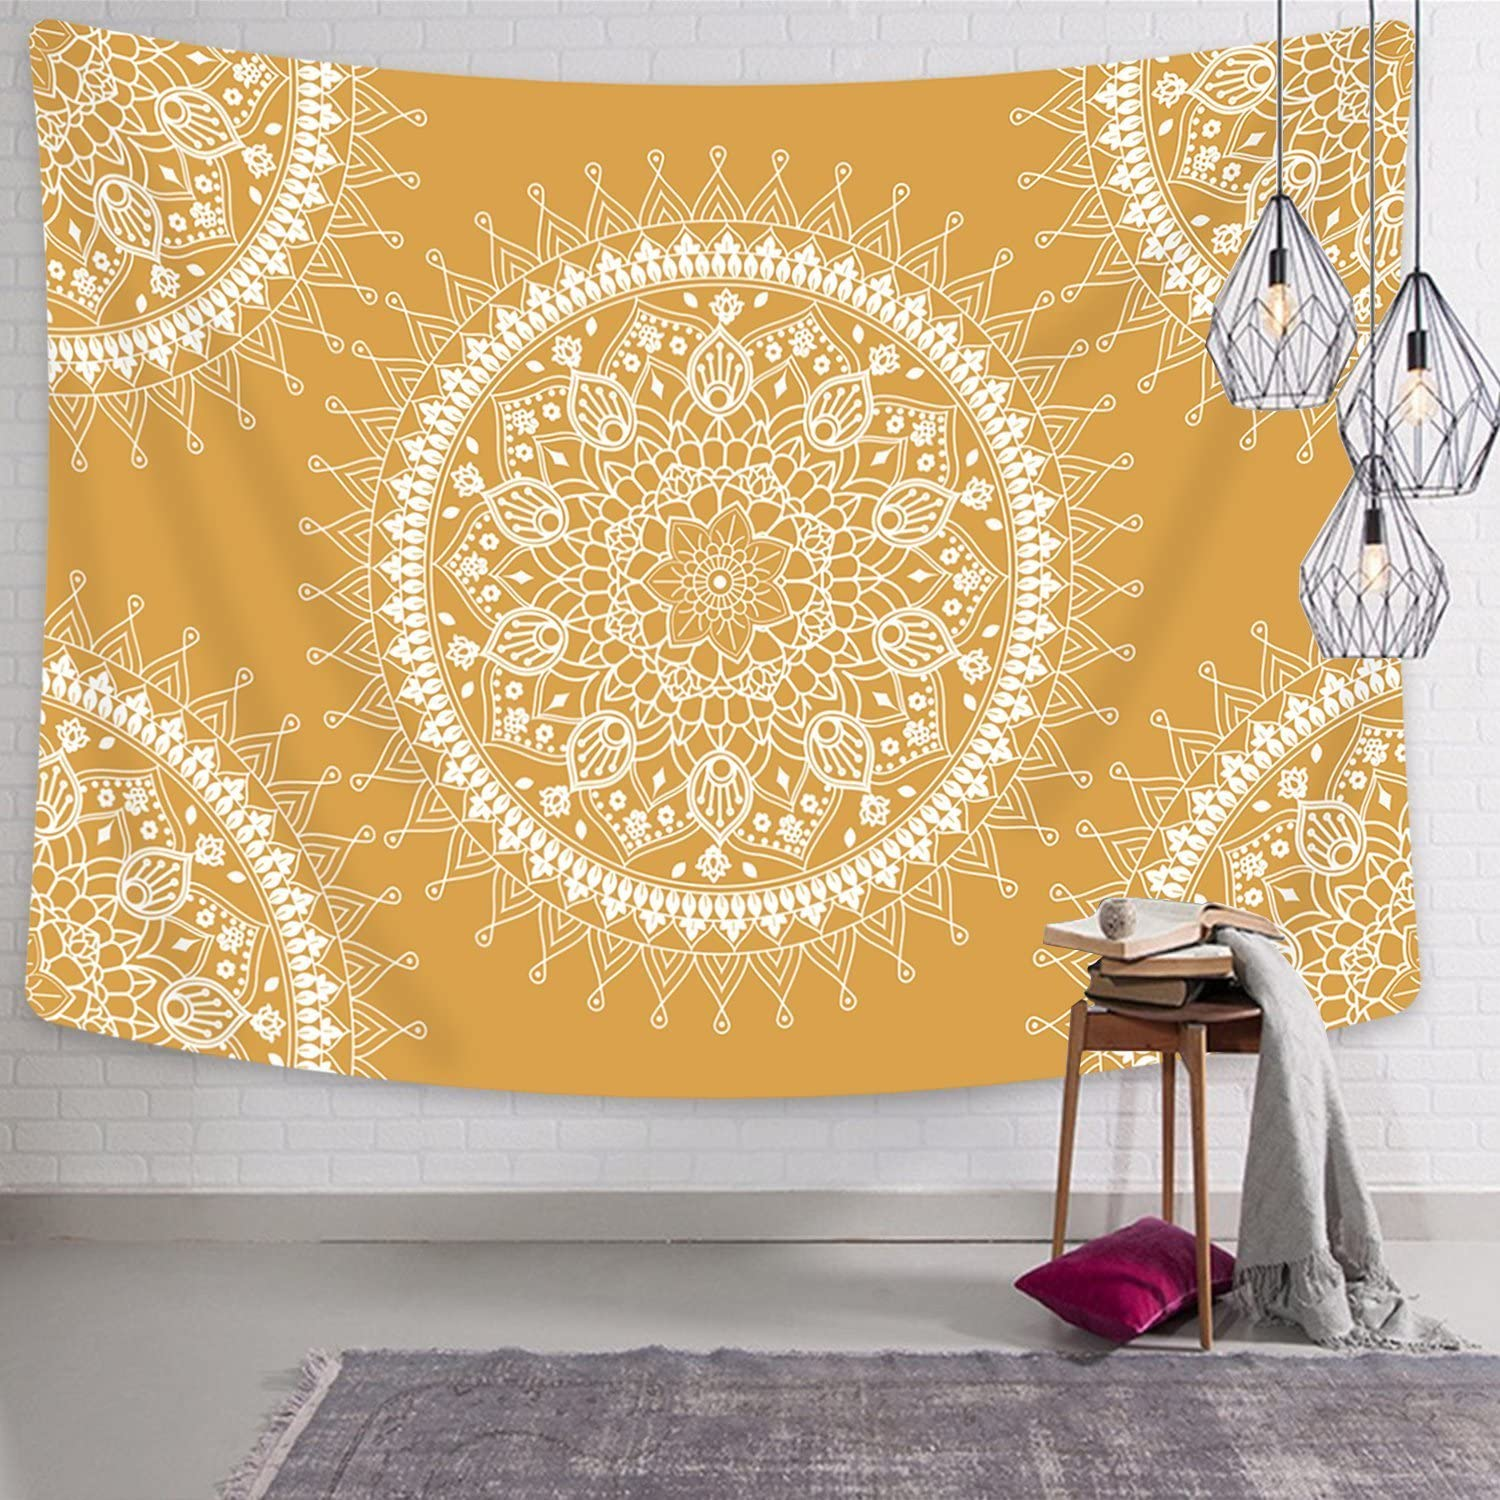 """Jiamingyang Flower Elephant Print Wall Hanging Tapestry Bohemian Room Decor Bedding Rug (Large/80"""" x 60"""", Yellow)"""